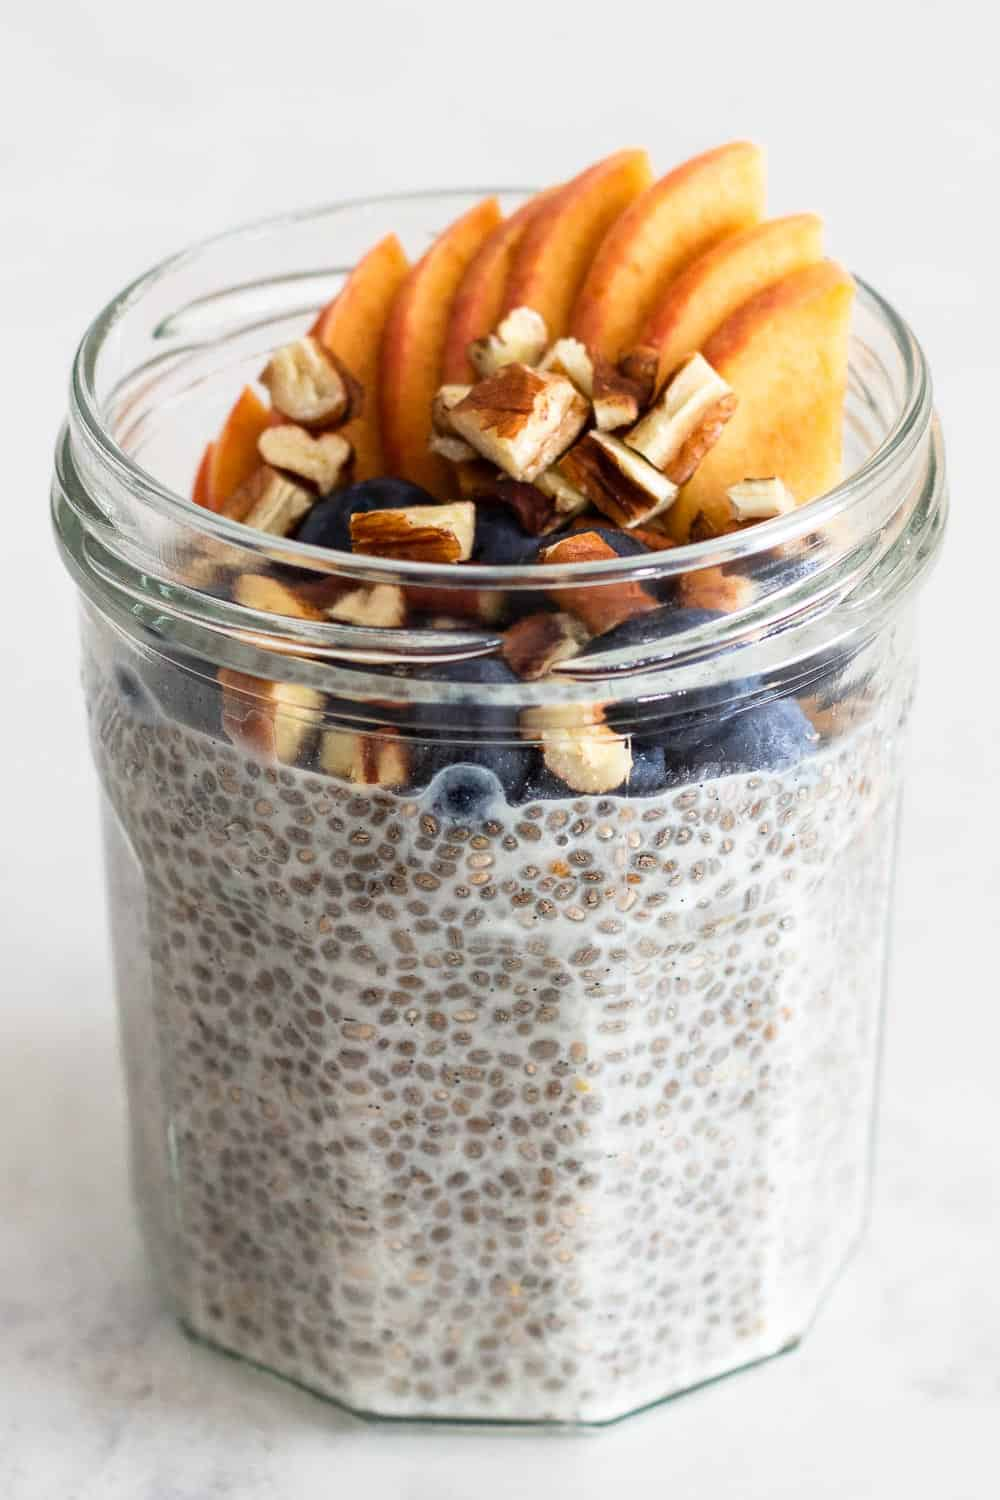 Vanilla-flavored almond milk Chia Seed Pudding in a glass jar topped with peach, blueberries and pecans.